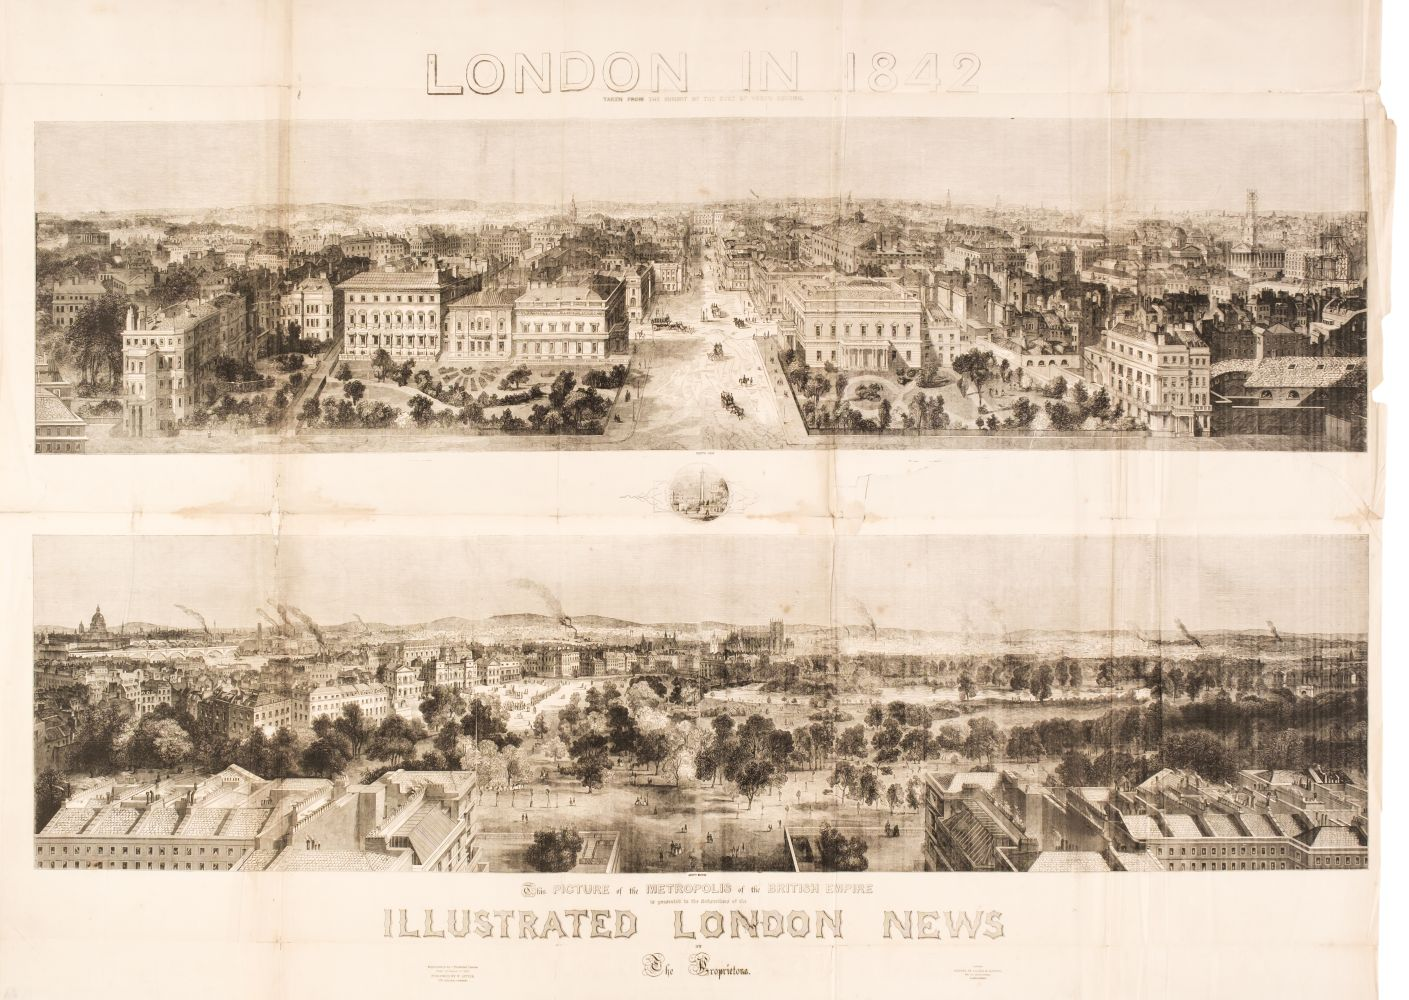 London. Illustrated London News (publisher), London in 1842,